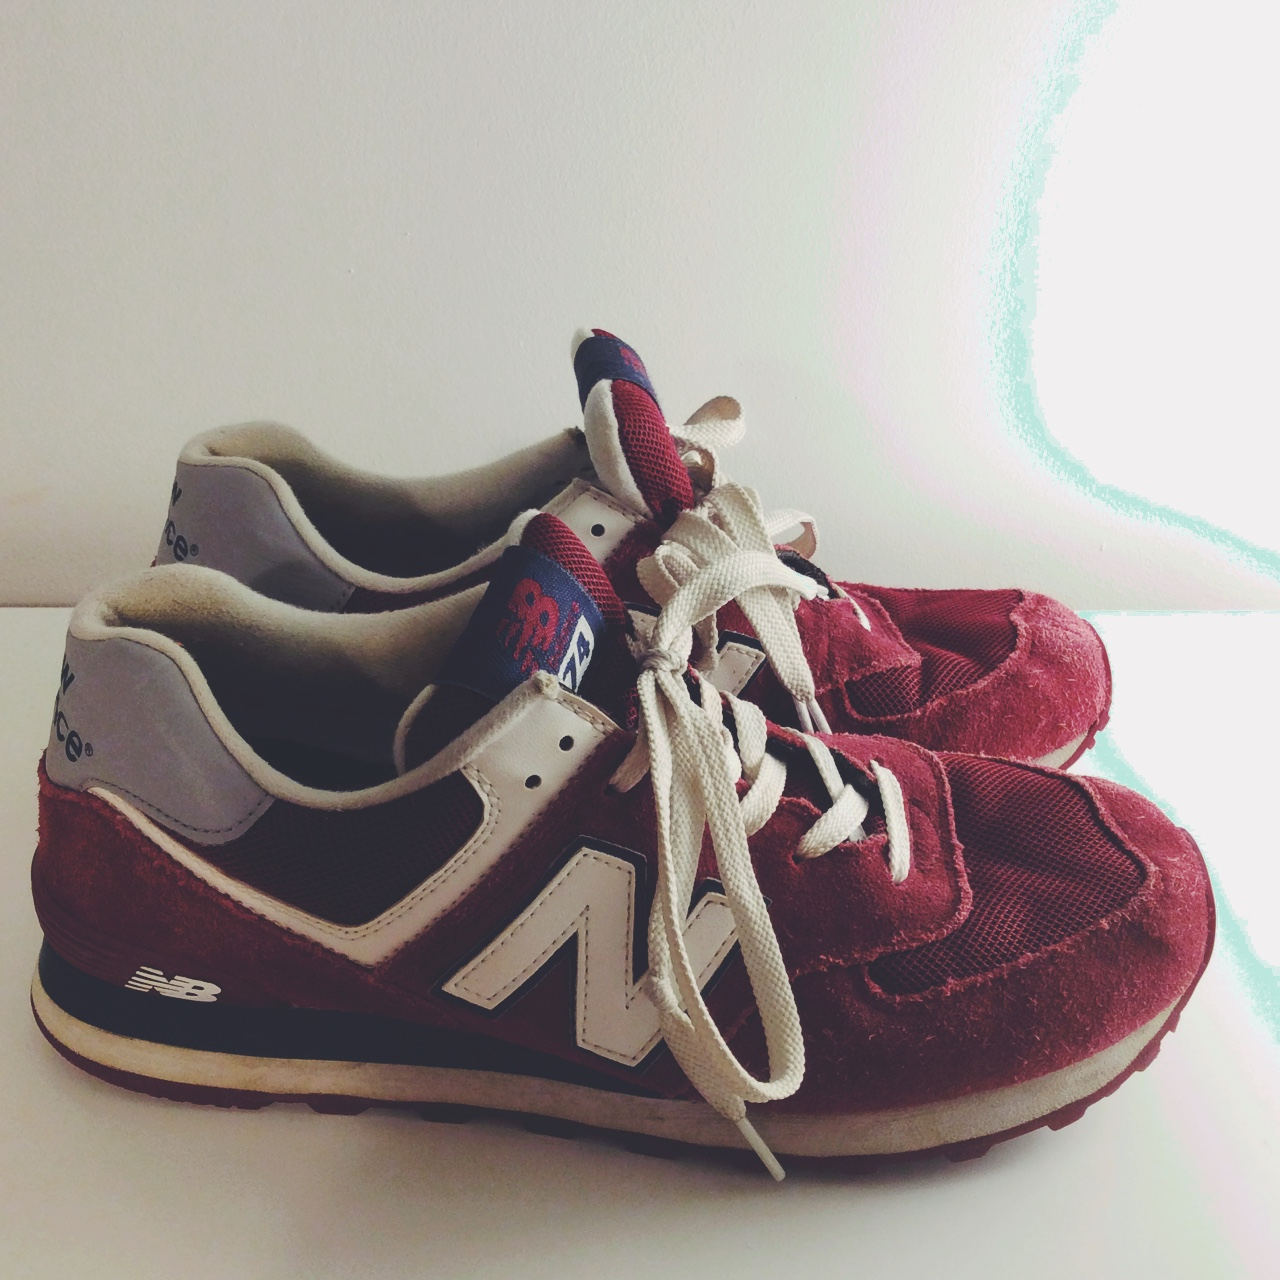 best service 0d209 b5b21 ✨ new balance 574 burgundy trainers ✨ bought for... - Depop